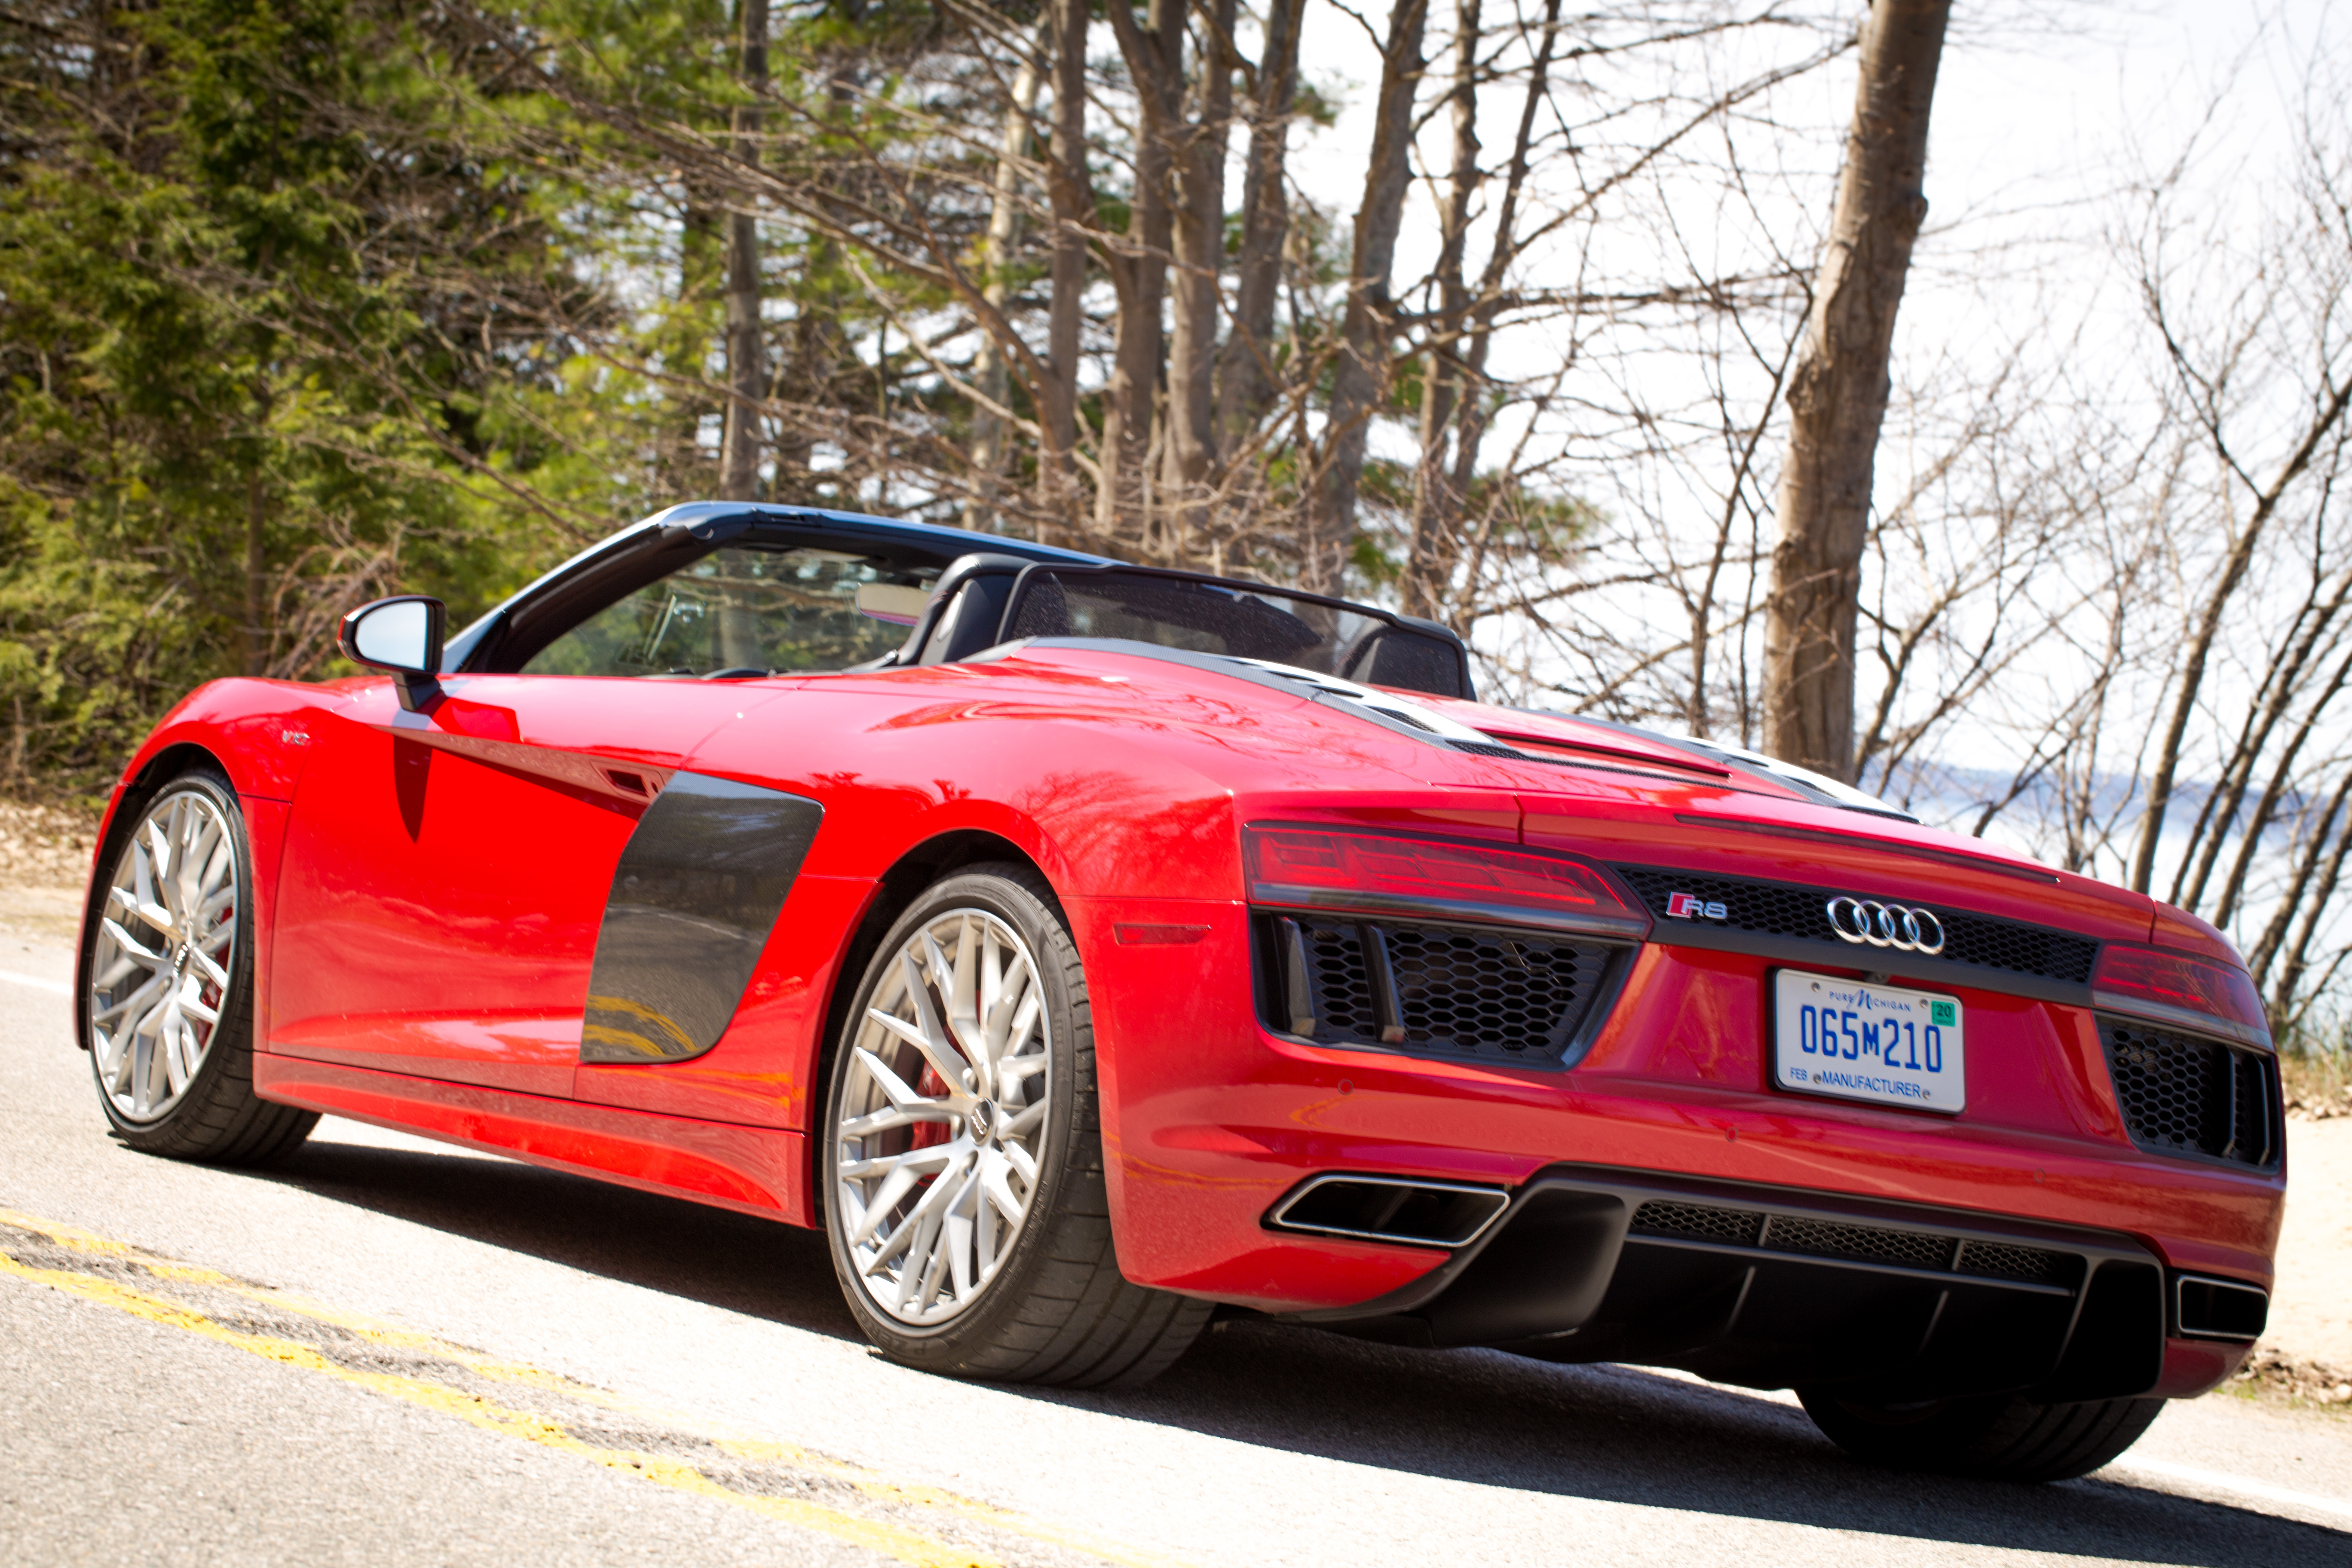 Review A Week In An Audi R Spyder An Everyday Supercar - Where are audis made